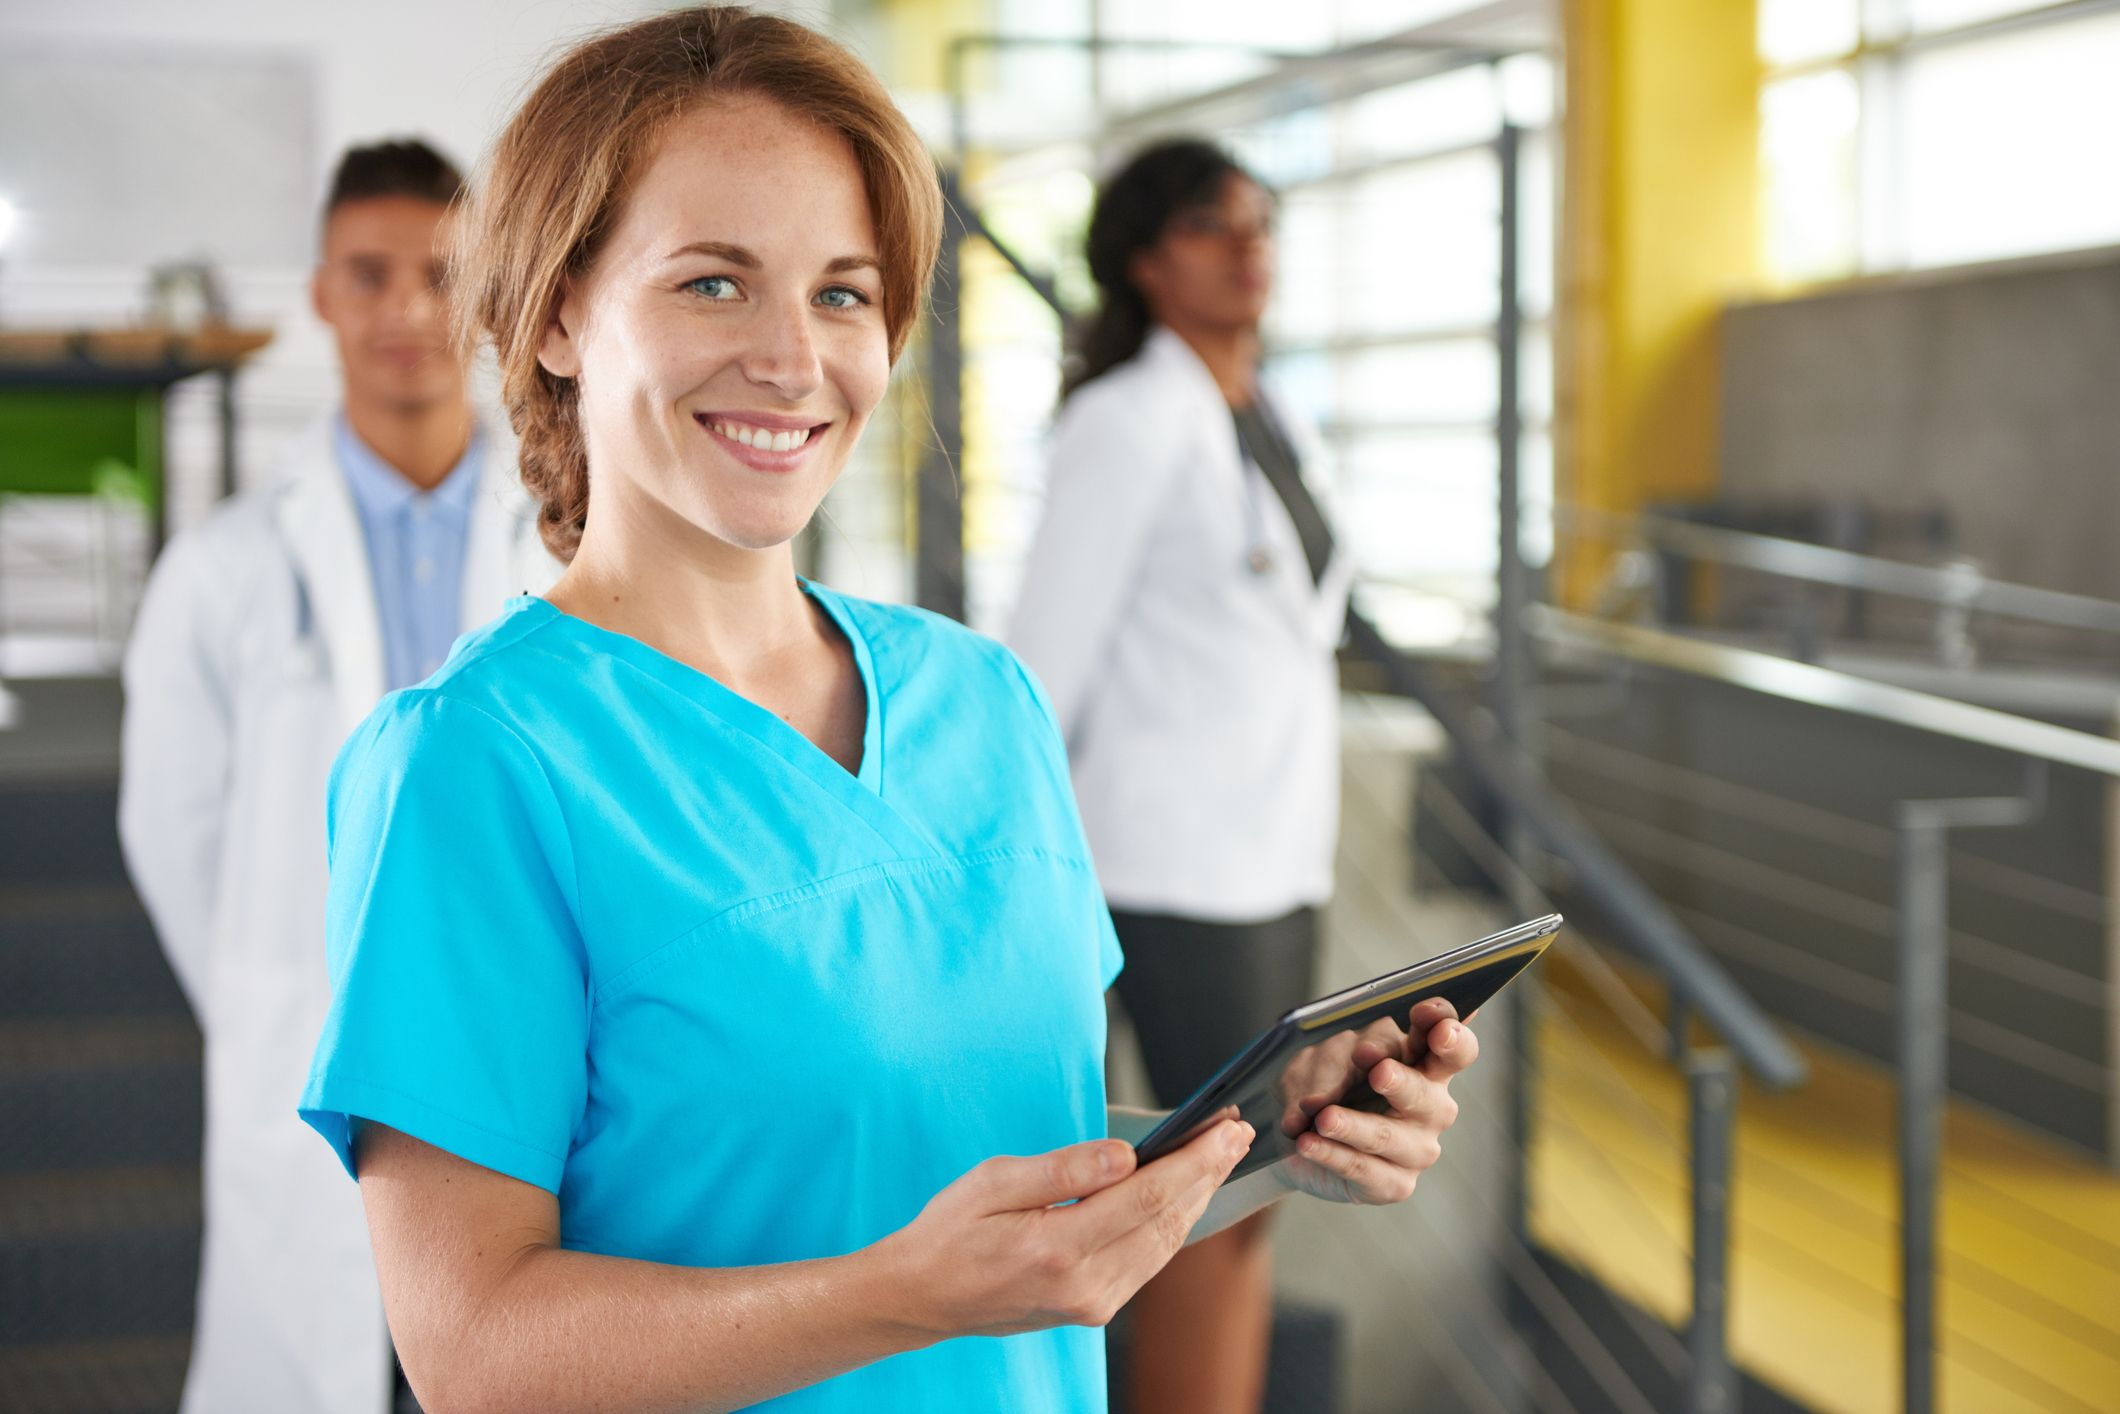 Get to know more about careers in nursing Northwestern